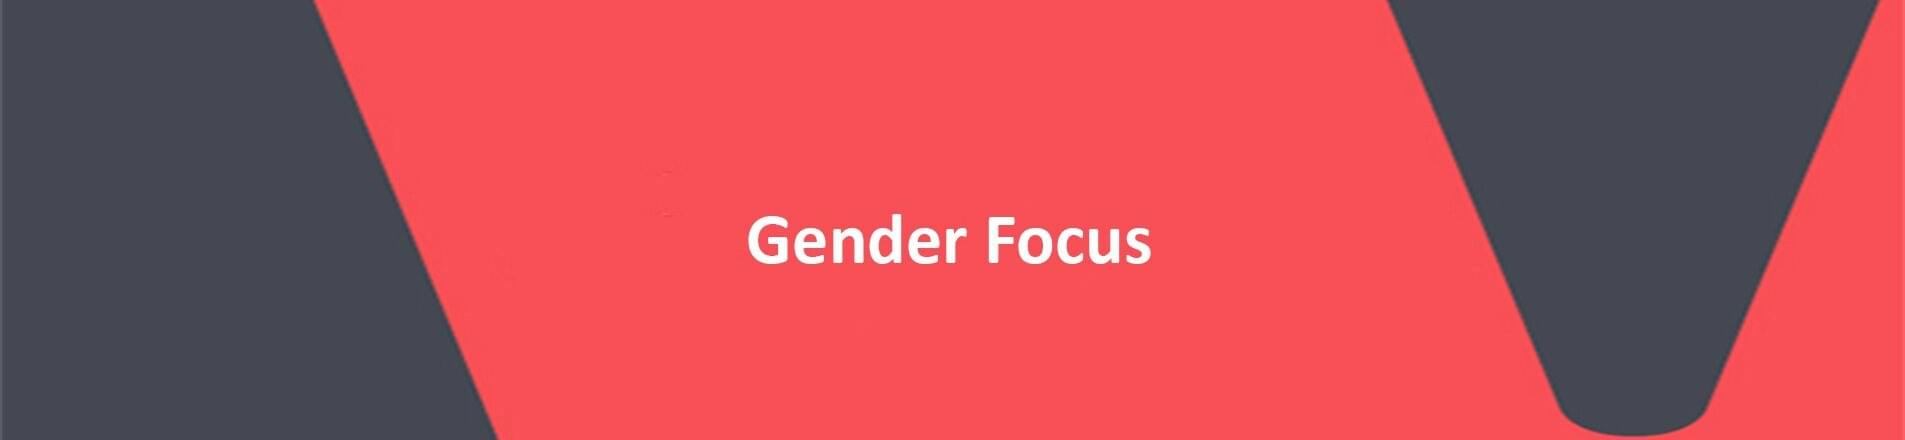 Red background with white text overlaid spelling Gender Focus.